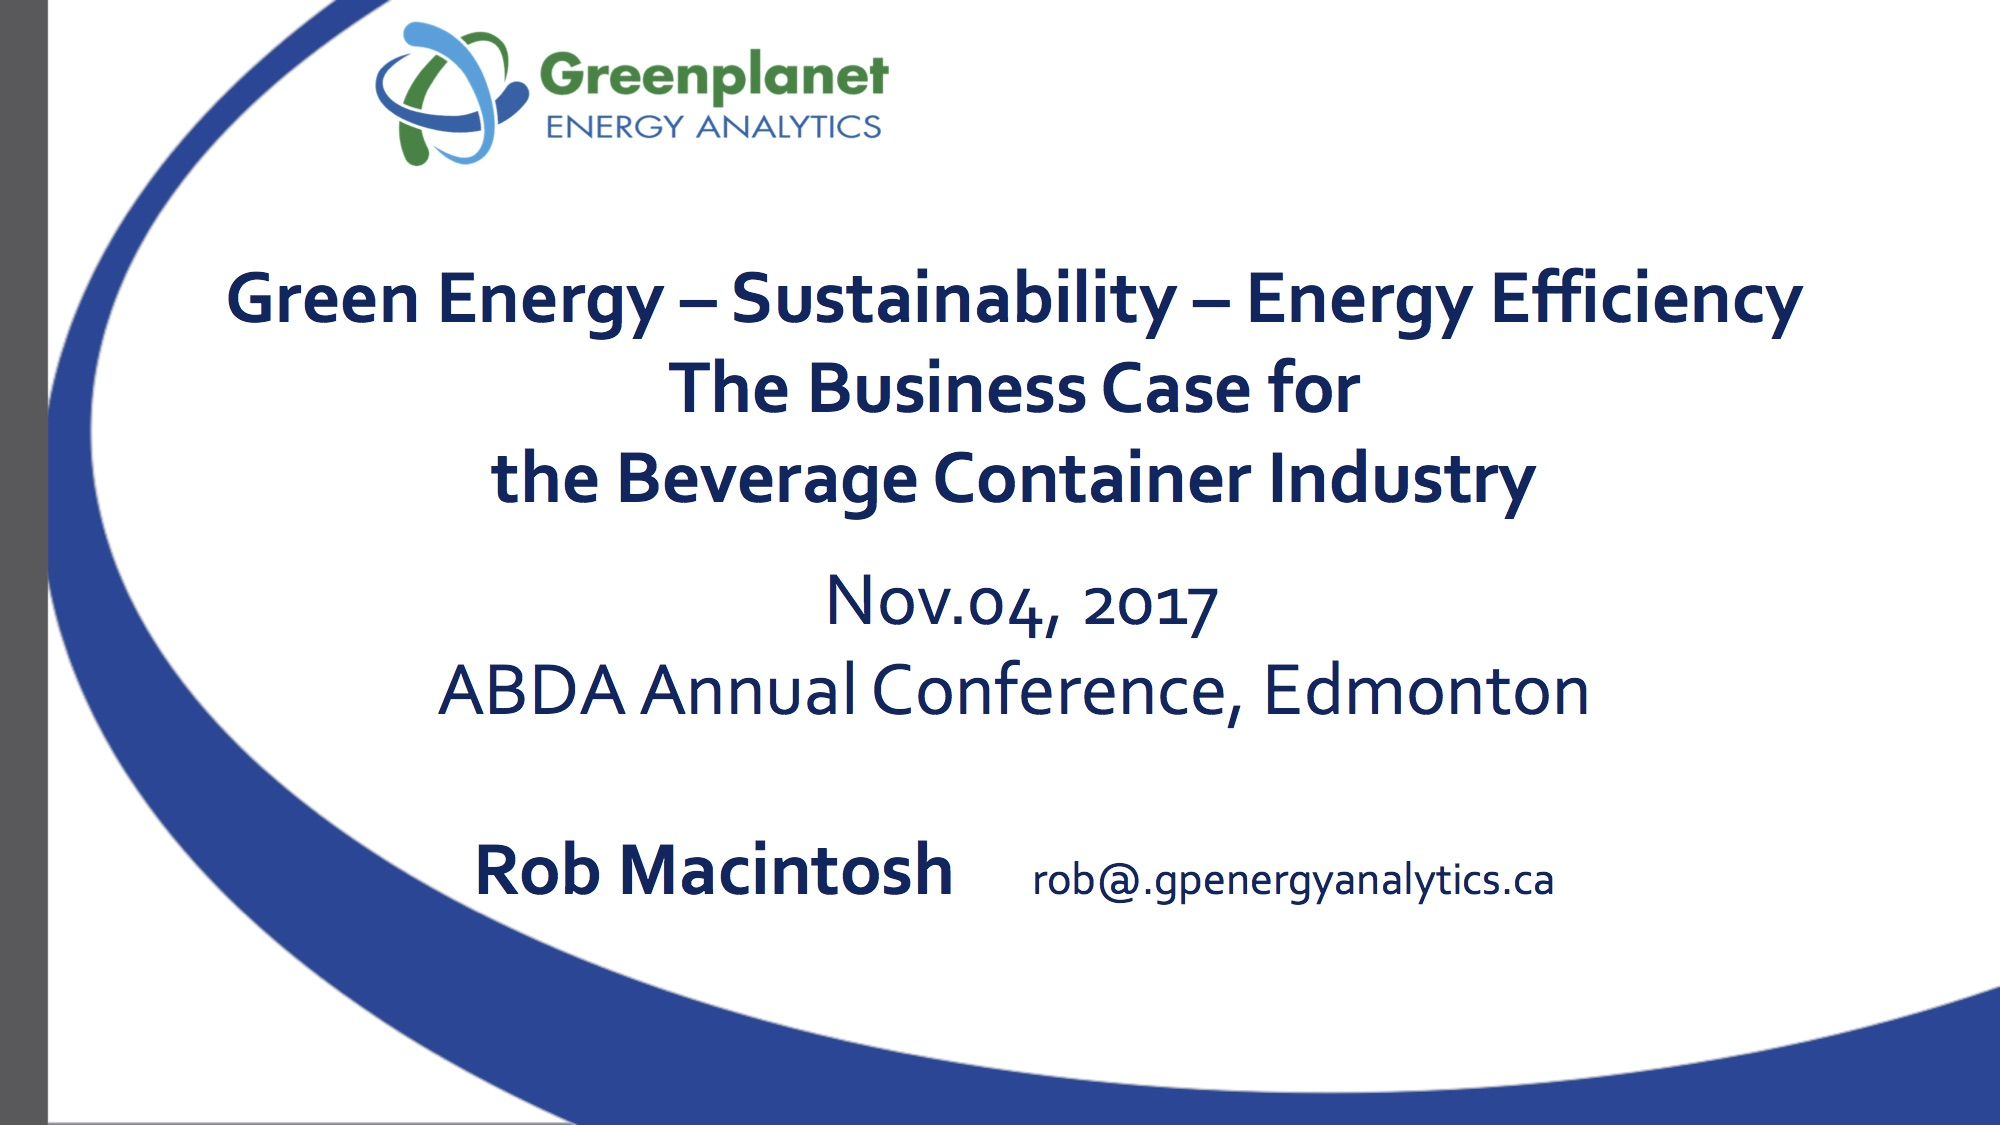 Rob Macintosh  - Greenplanet Energy Analytics